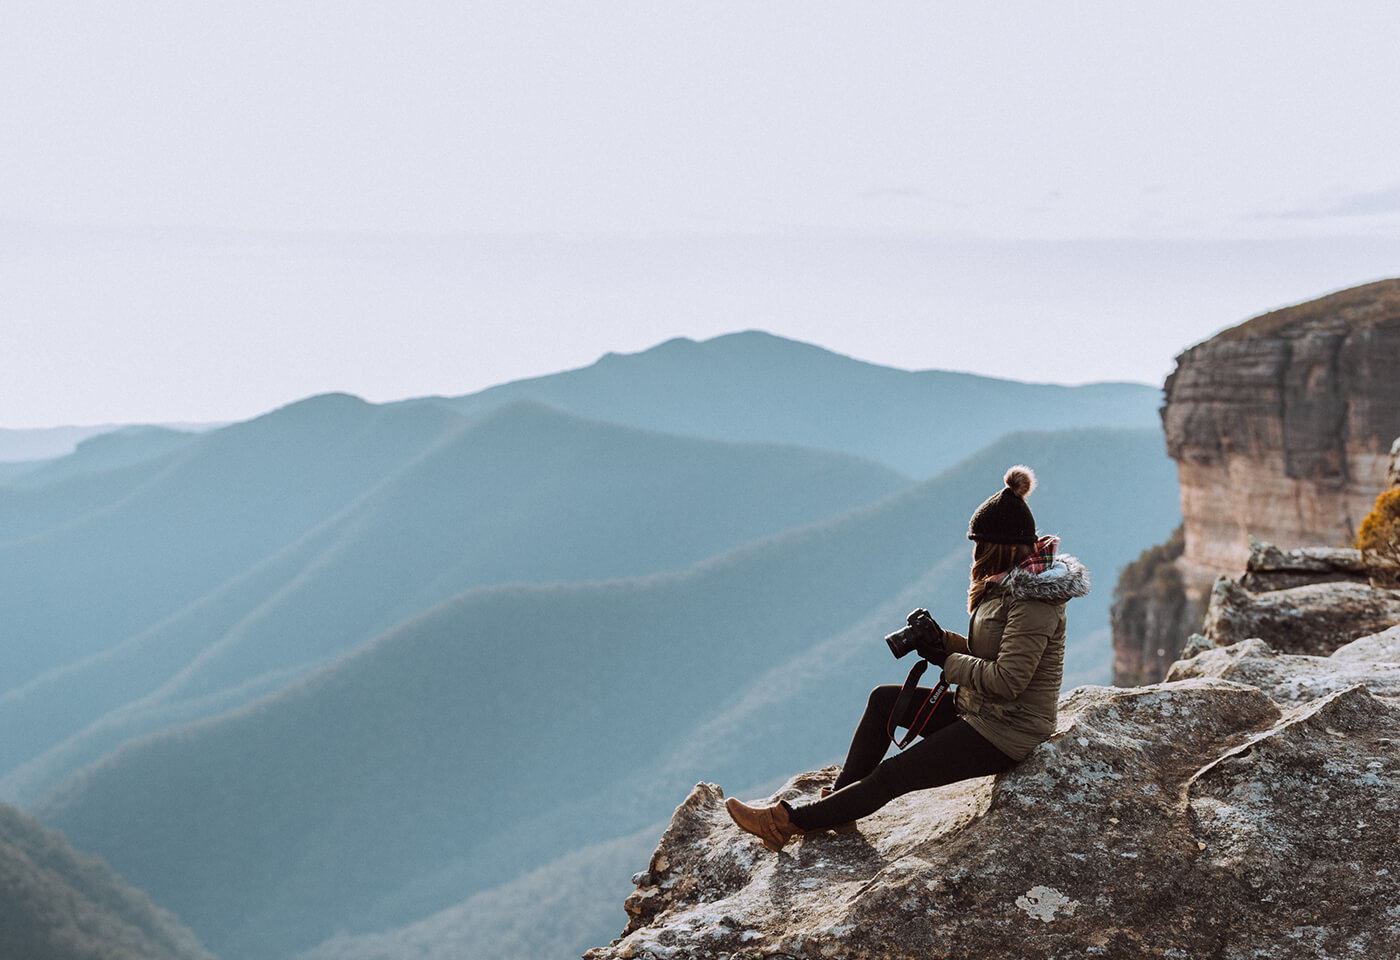 Photograoher with EOS 6D Mark II sitting on mountain top